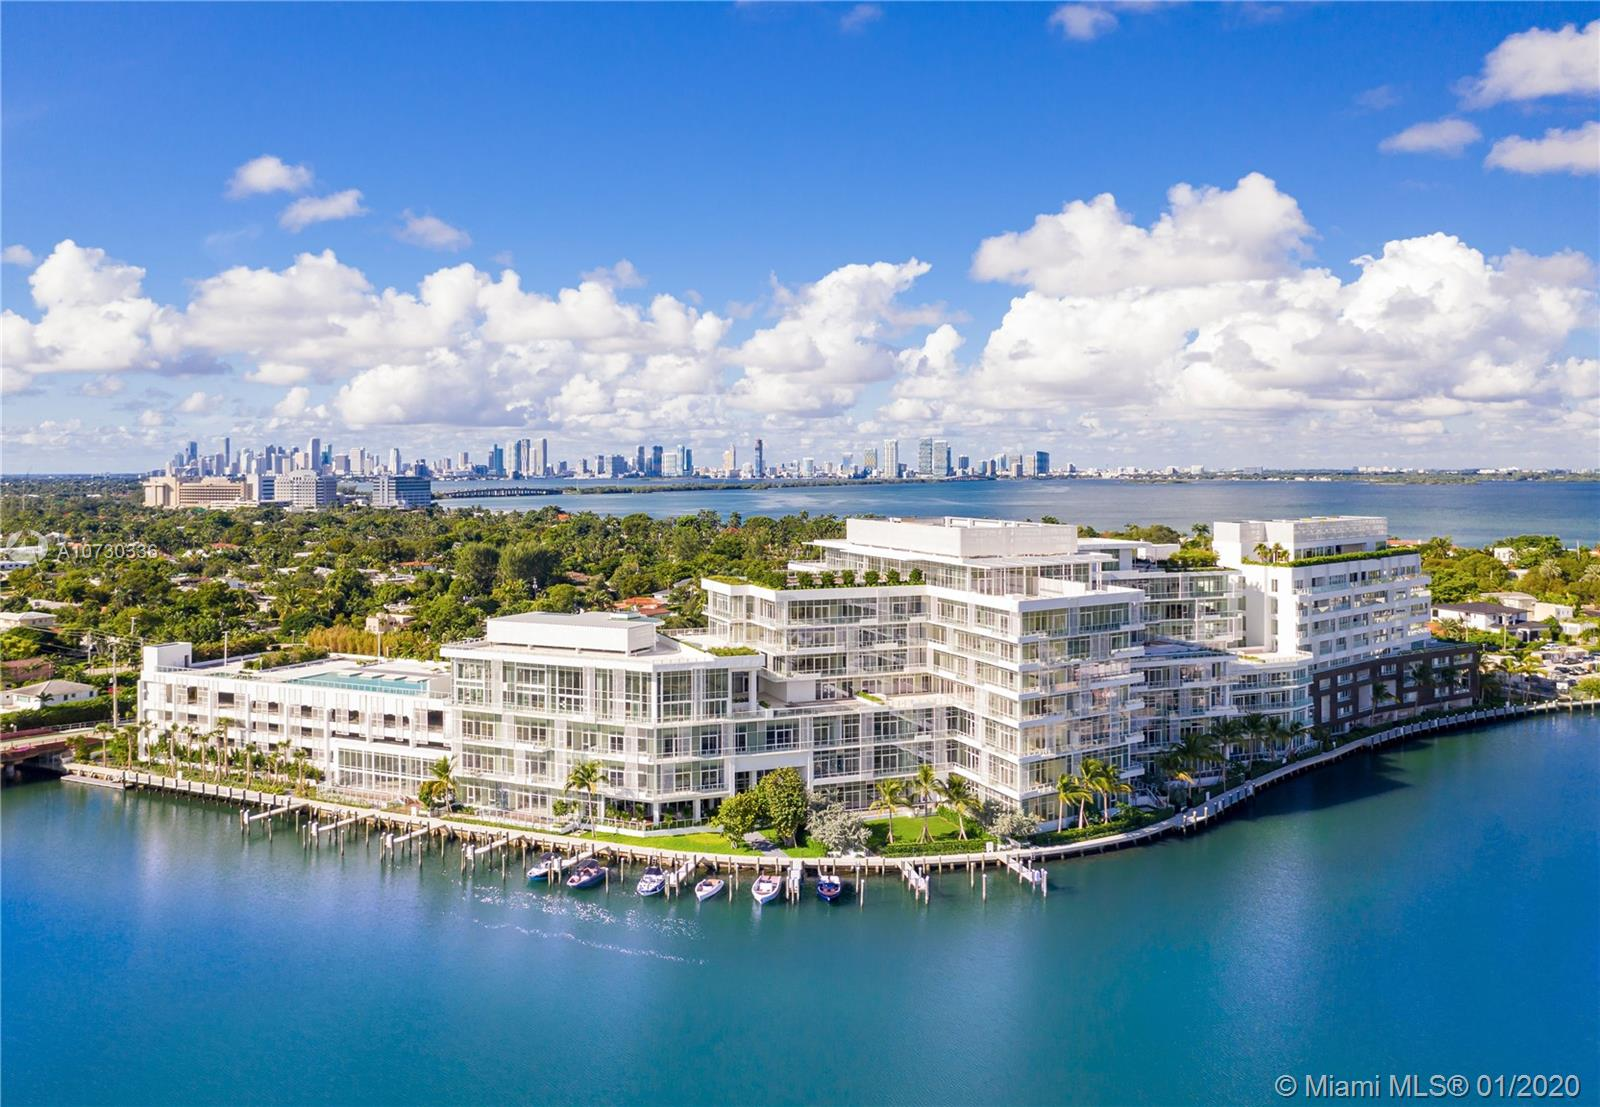 Biscayne Bay and Downtown views greet you as you enter this expansive 2 bedroom, 2.5 bathroom, light-filled corner residence. Finishes and features include stone and wood flooring throughout, Boffi kitchens, Gaggenau appliances, and Zucchini plumbing. Discover the private side of Miami Beach today at The Ritz-Carlton Miami Beach, comprised of 111 luxury Residences and Villas Designed by Piero Lissoni.